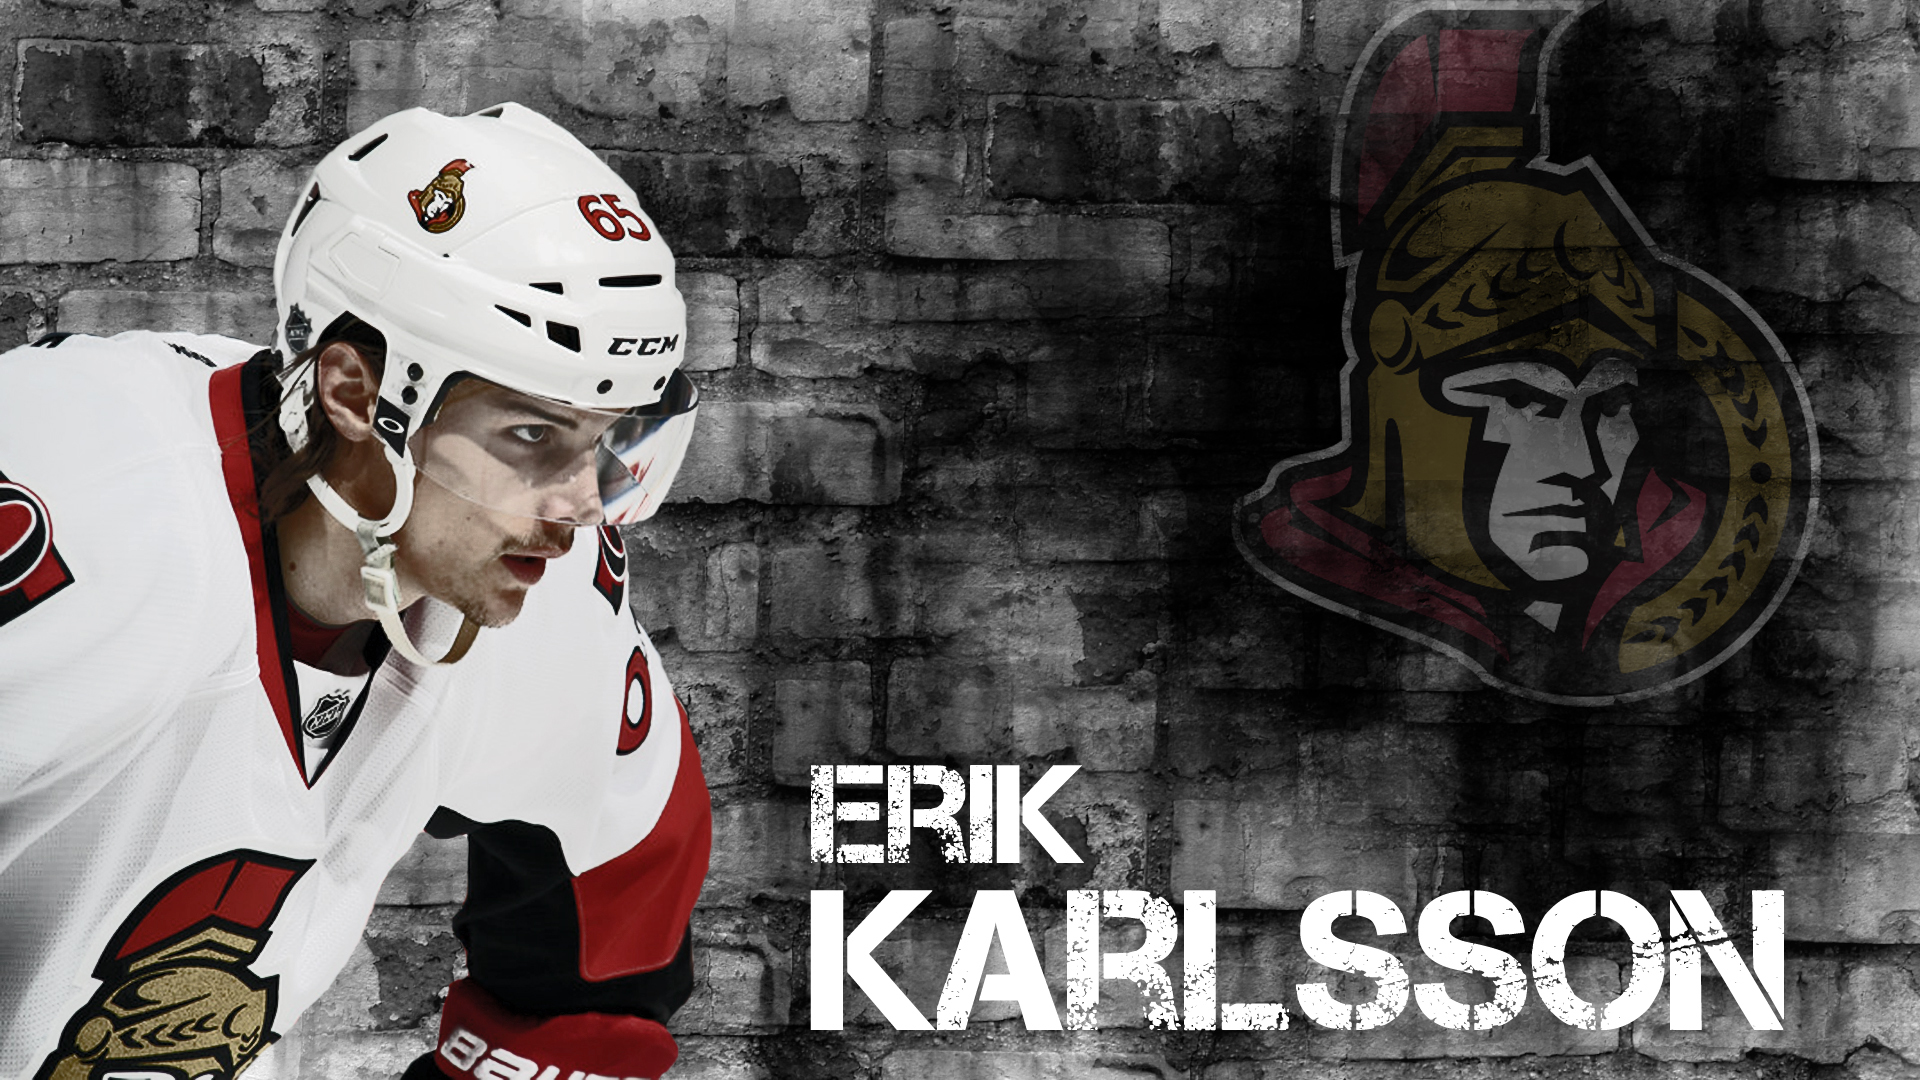 Player Ottawa Erik Karlsson wallpapers and images   wallpapers 1920x1080